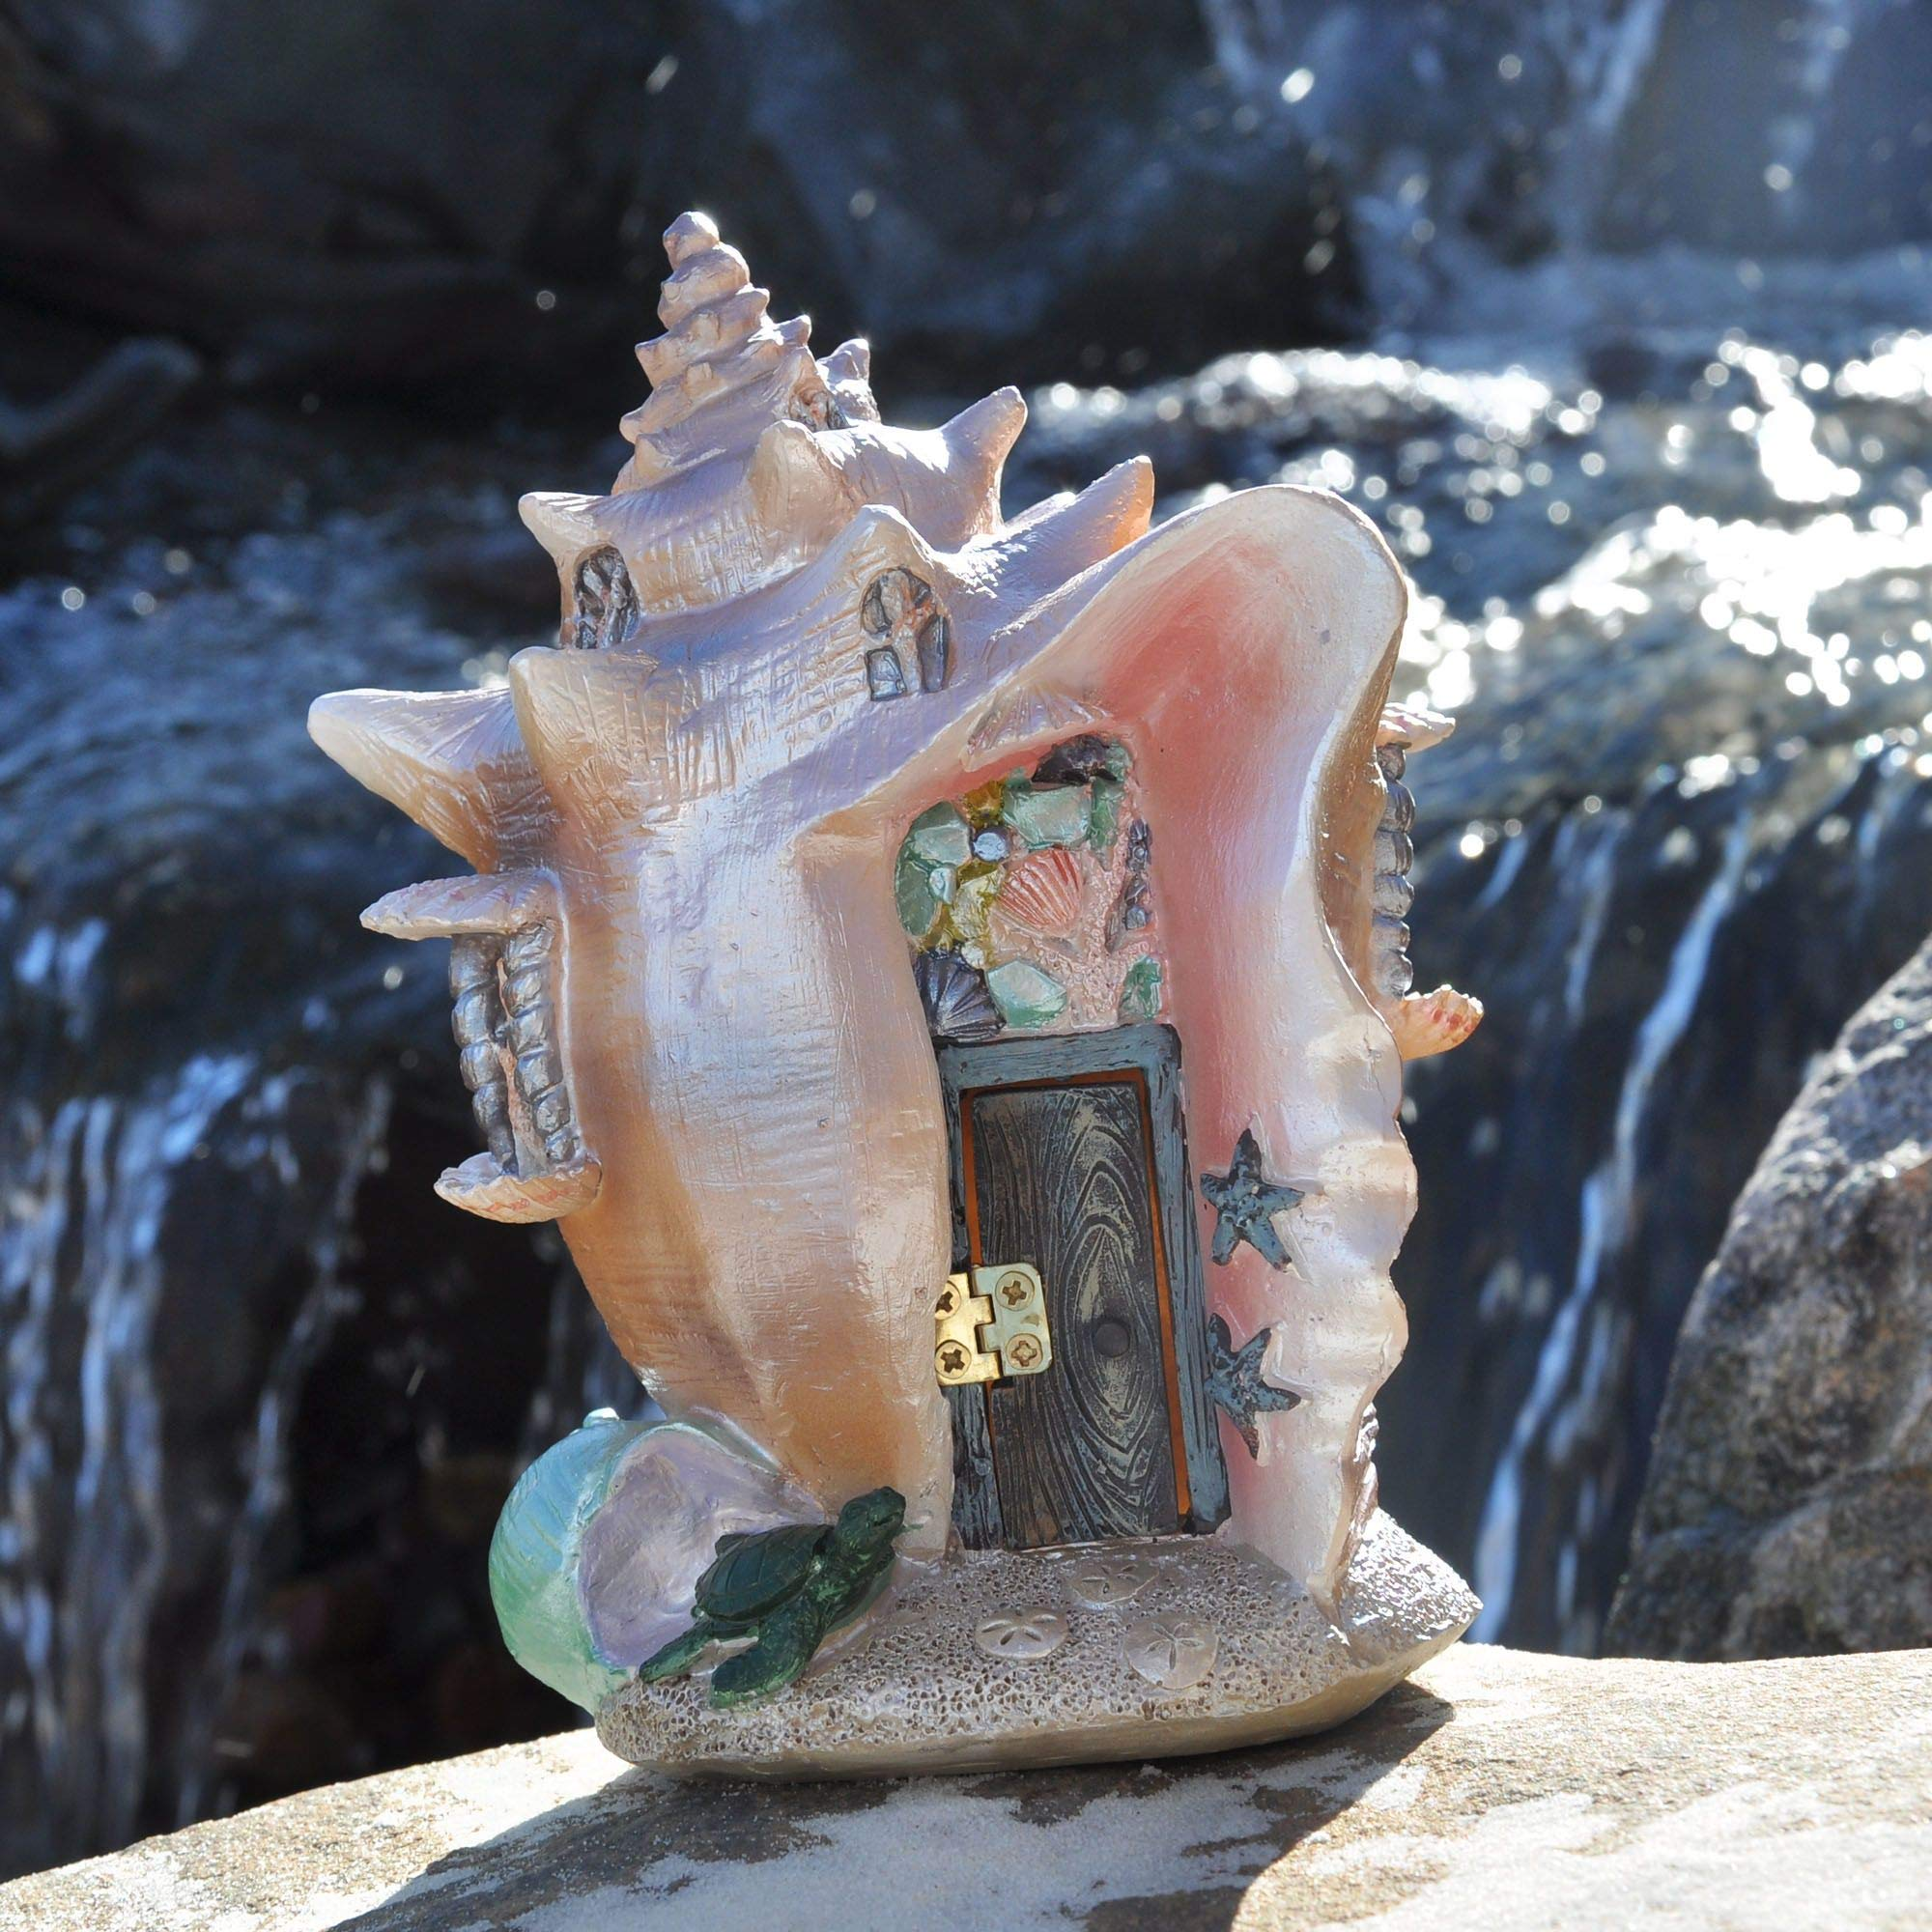 Fiddlehead Fairy Garden Conch Condo Shell Fairy House by Georgetown Home and Garden (Image #2)